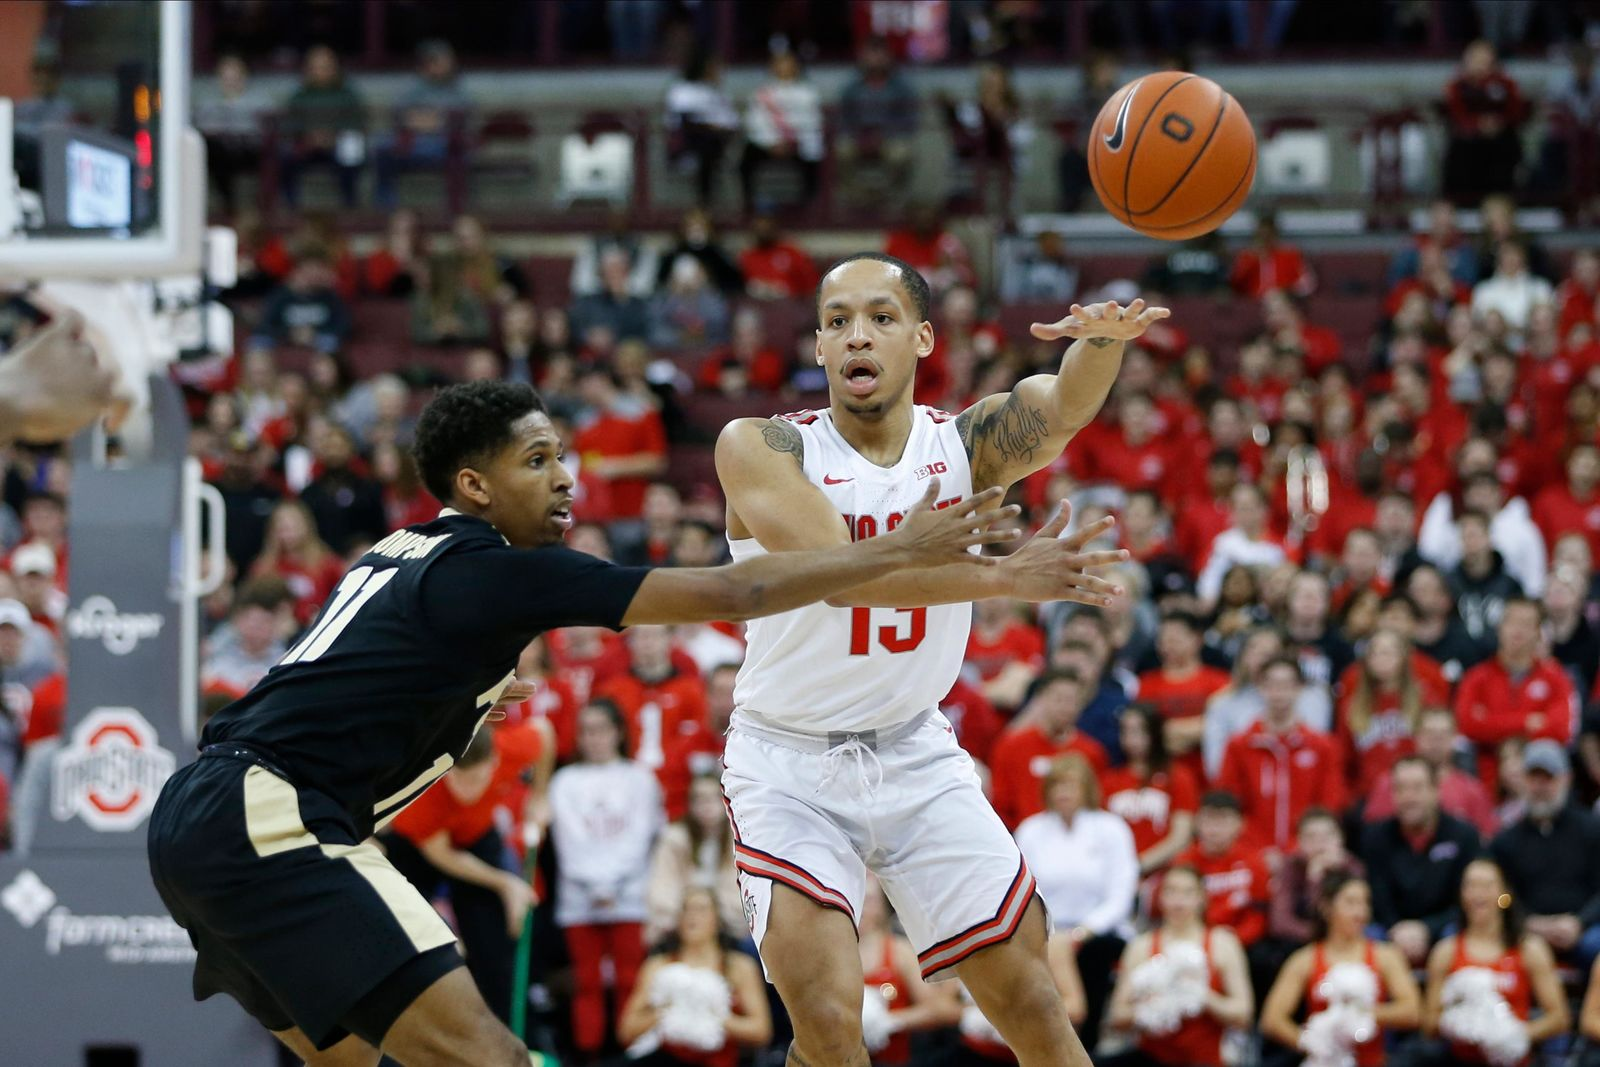 Ohio State's C.J. Walker, right, passes the ball as Purdue's Isaiah Thompson defends during the second half of an NCAA college basketball game Saturday, Feb. 15, 2020, in Columbus, Ohio. Ohio State beat Purdue 68-52. (AP Photo/Jay LaPrete)